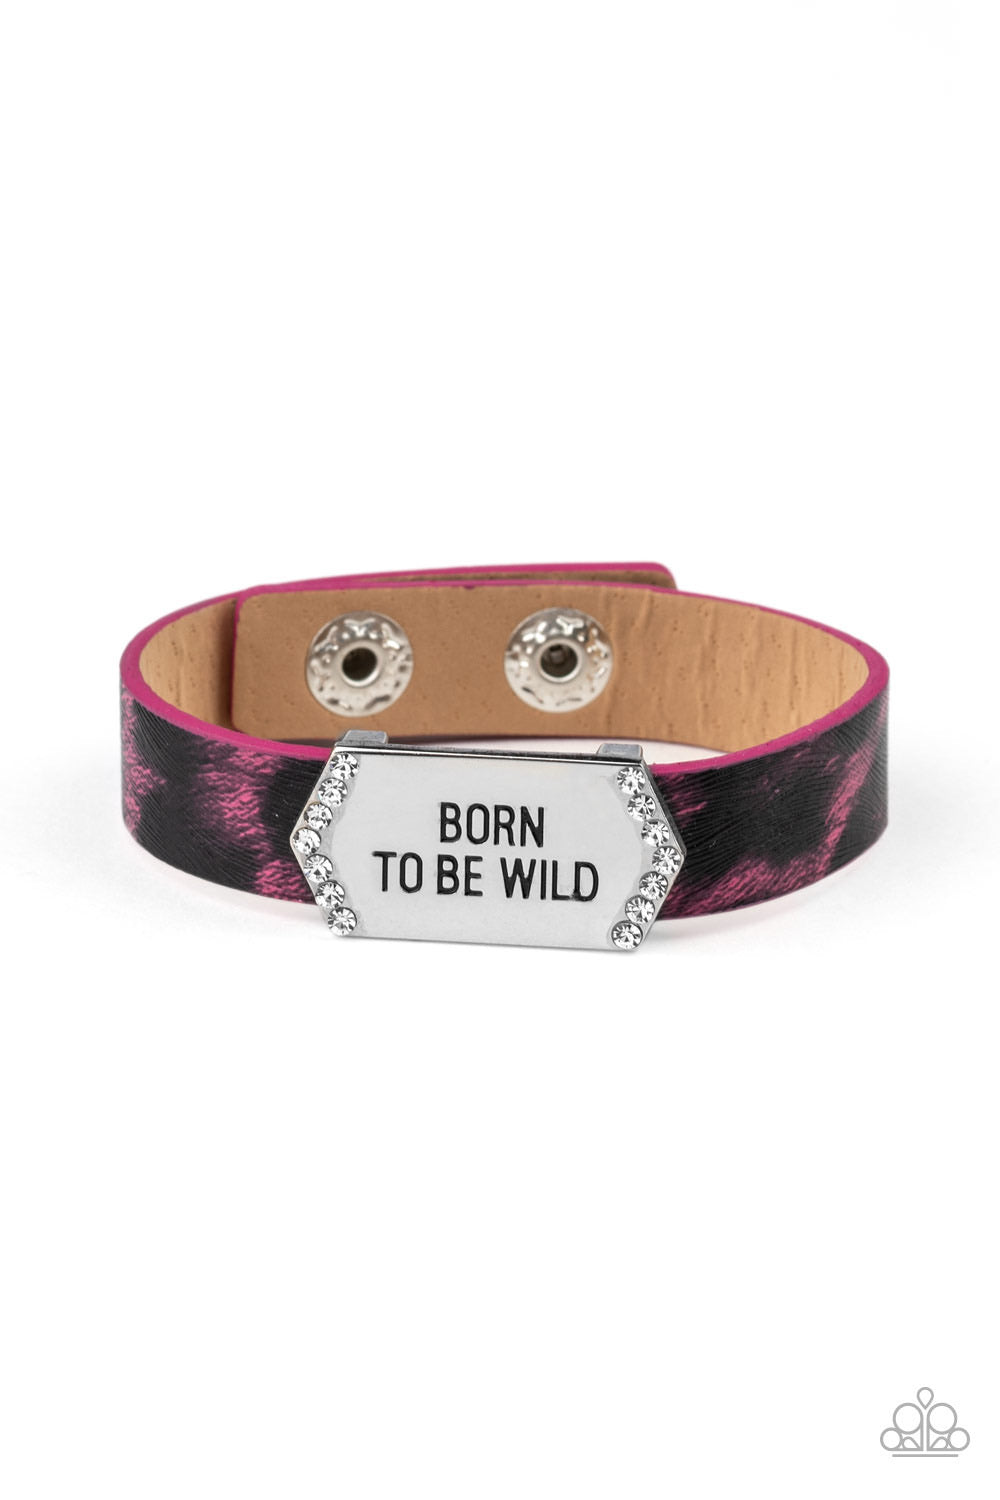 Born To Be Wild - Pink Leather Rhinestone Bracelet - Paparazzi Accessories